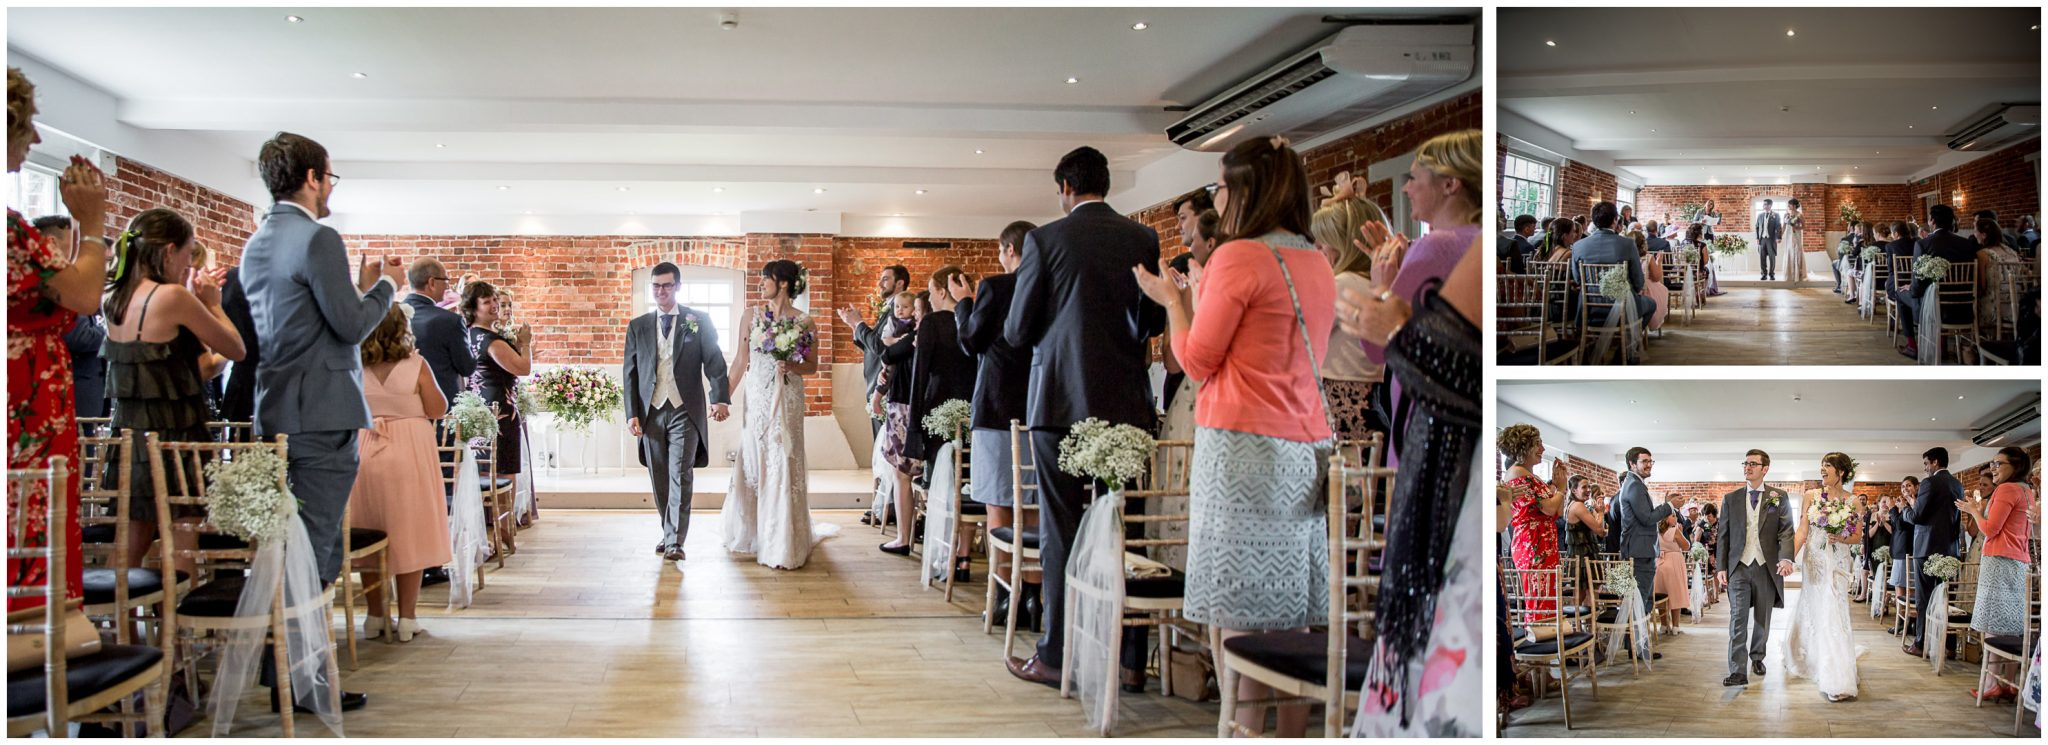 Sopley Mill wedding photography newly married couple walk down aisle